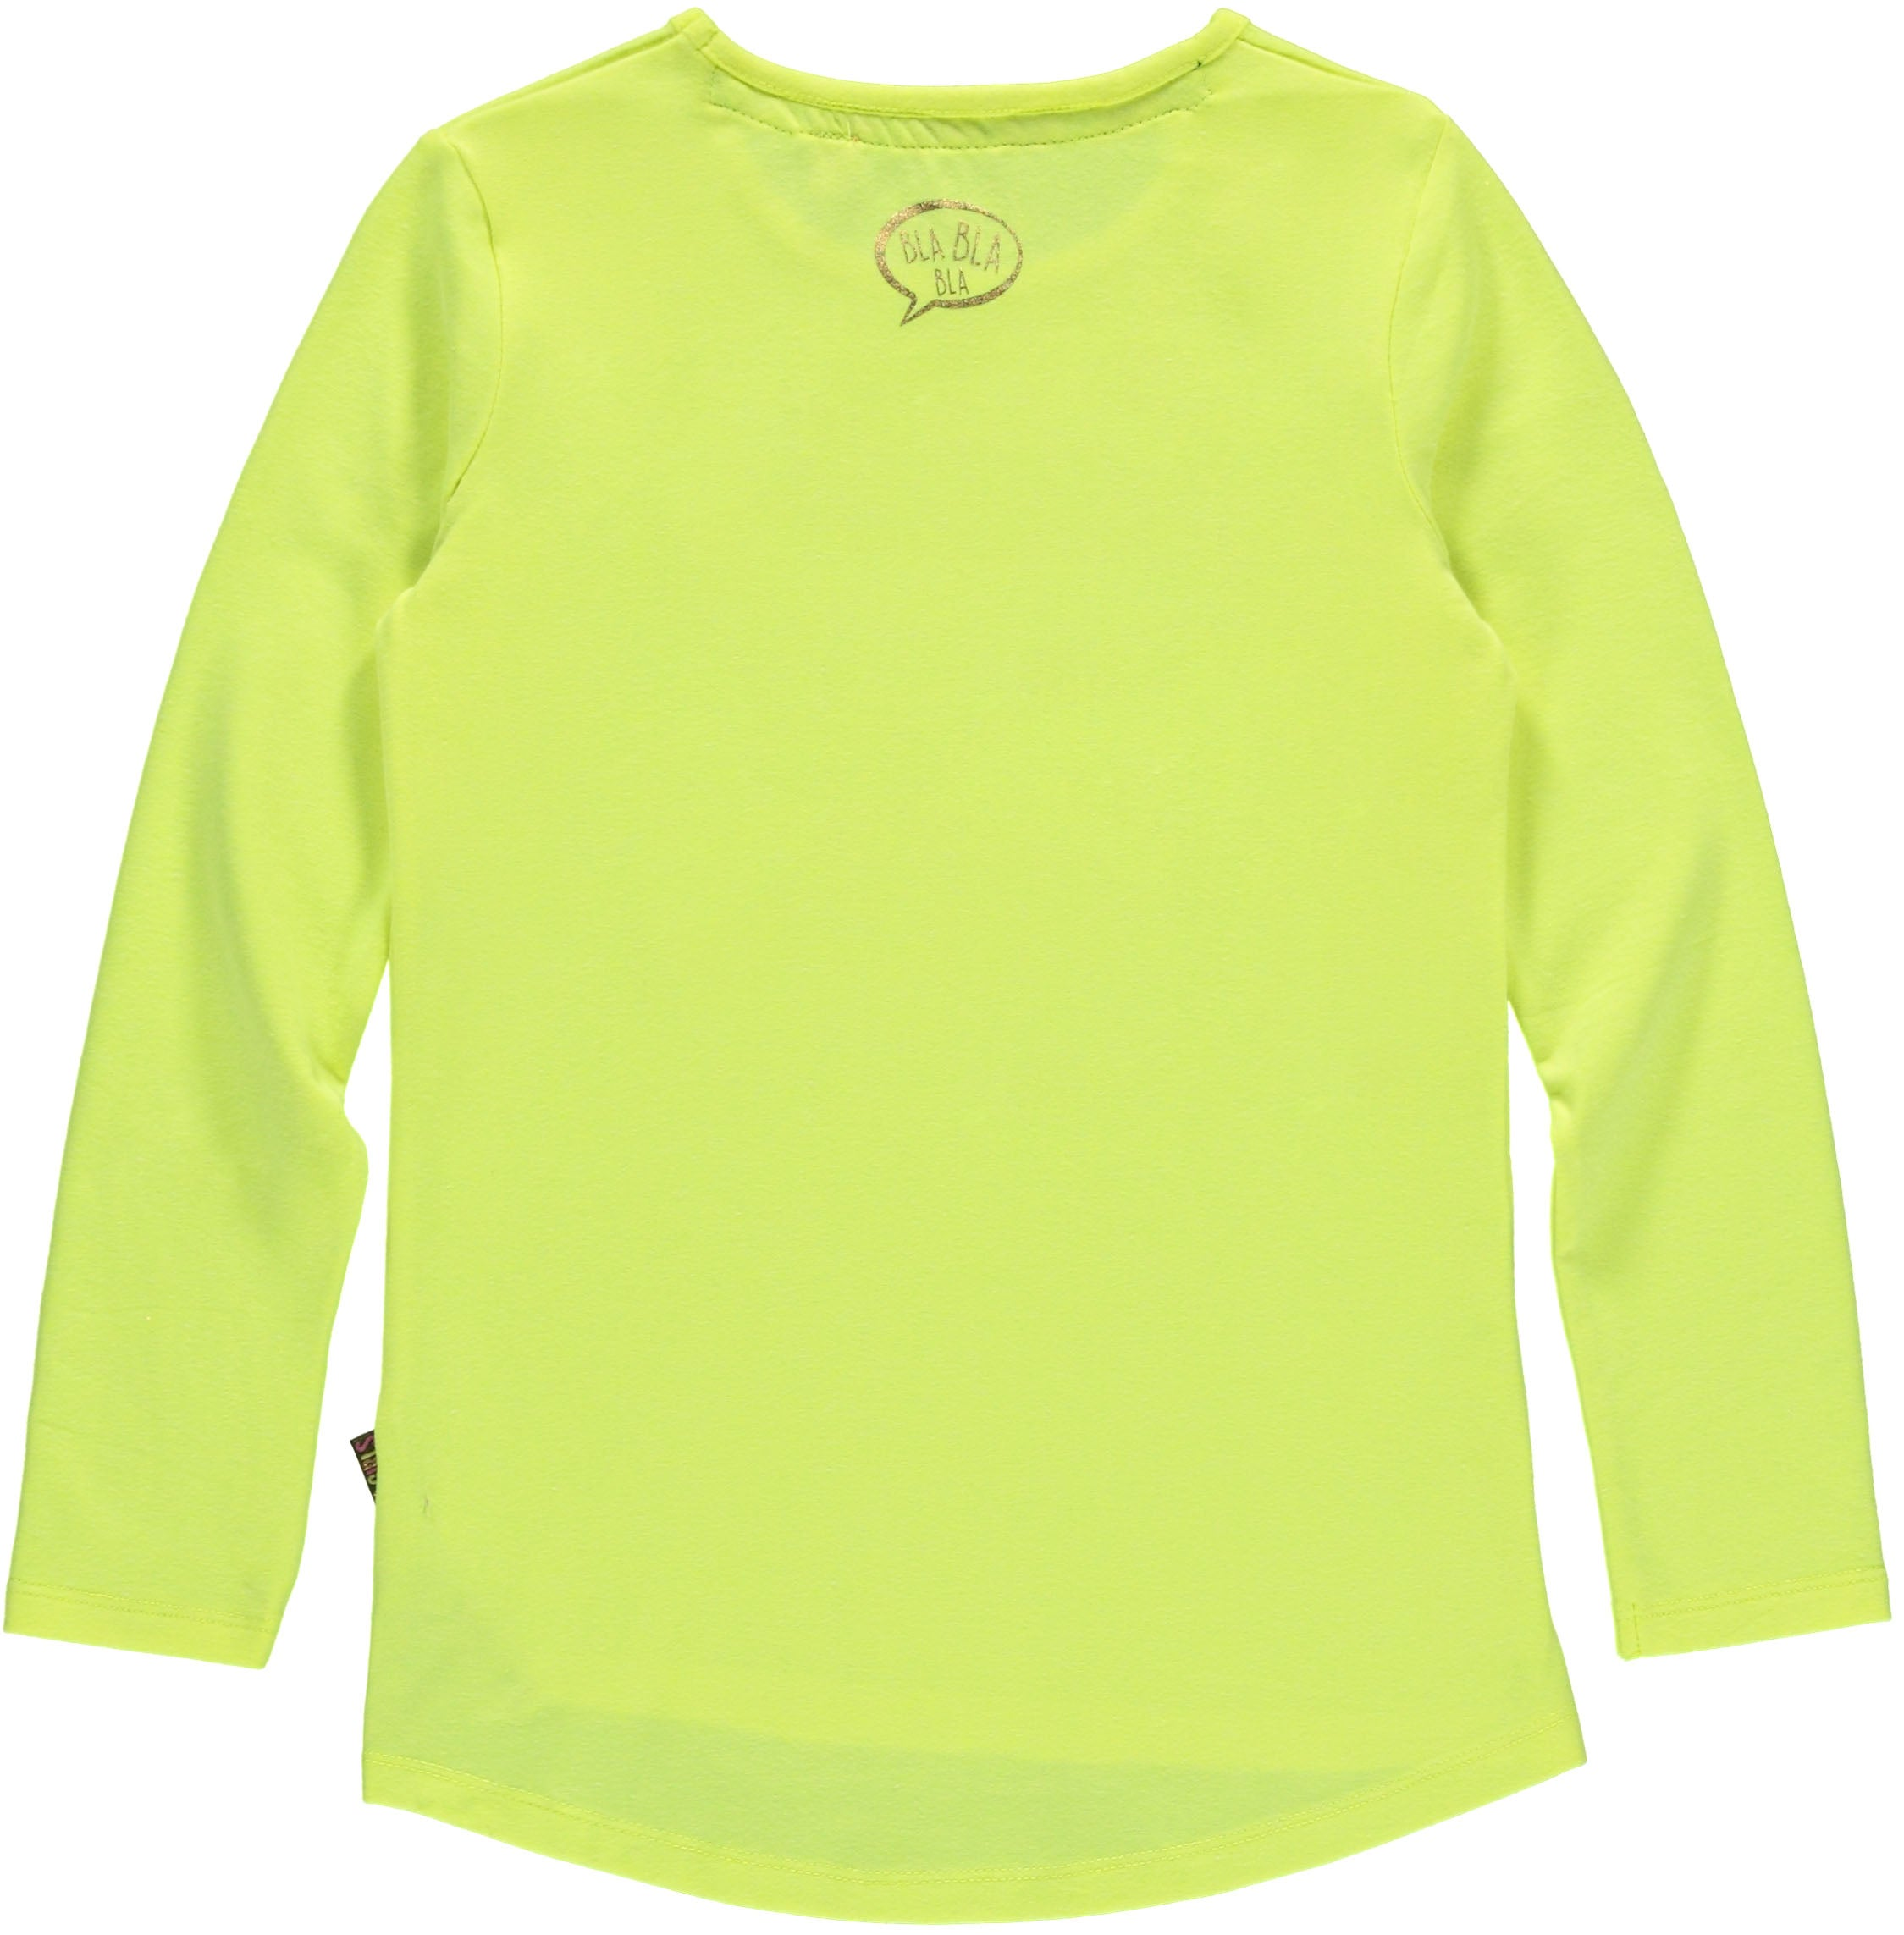 logsleeve t-shirt Bright Yellow